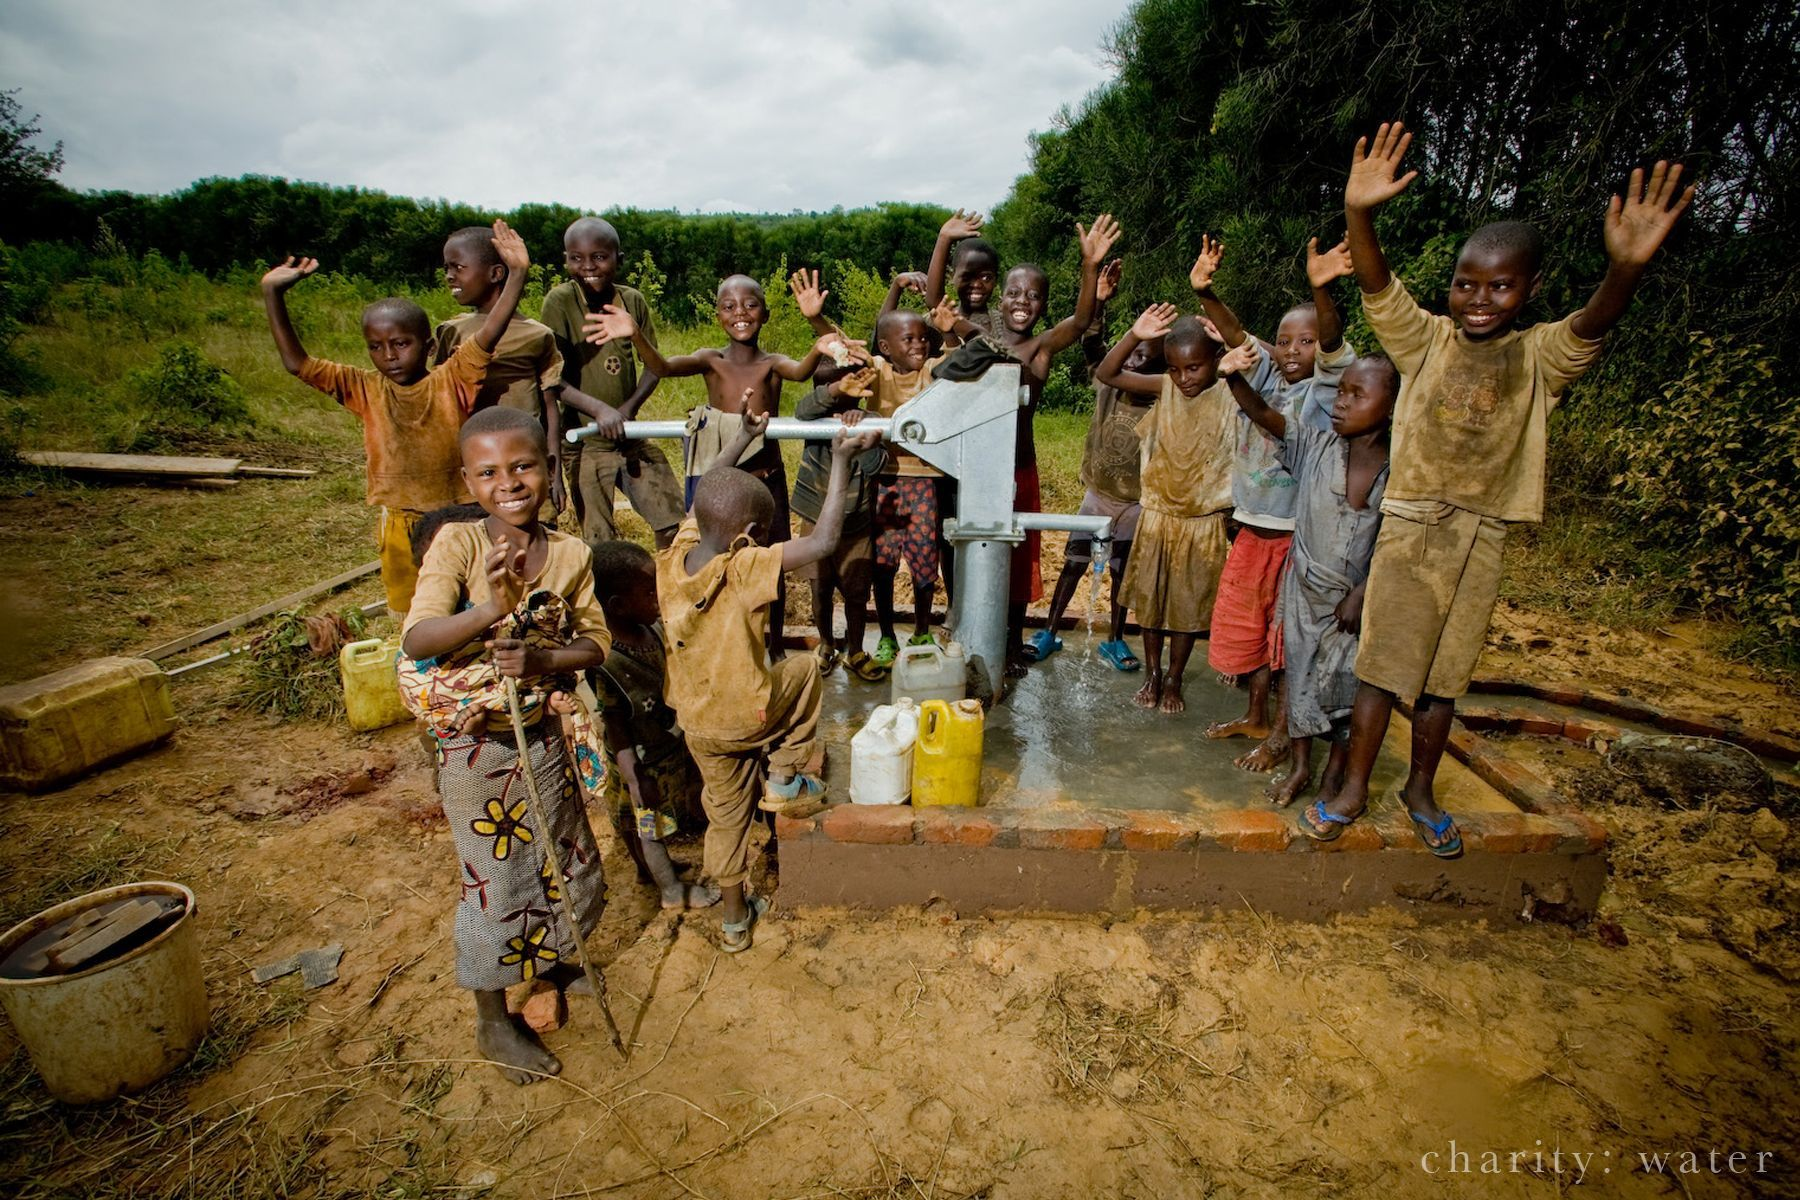 iGo Project: Charity initiative brings water to people in Ethiopia